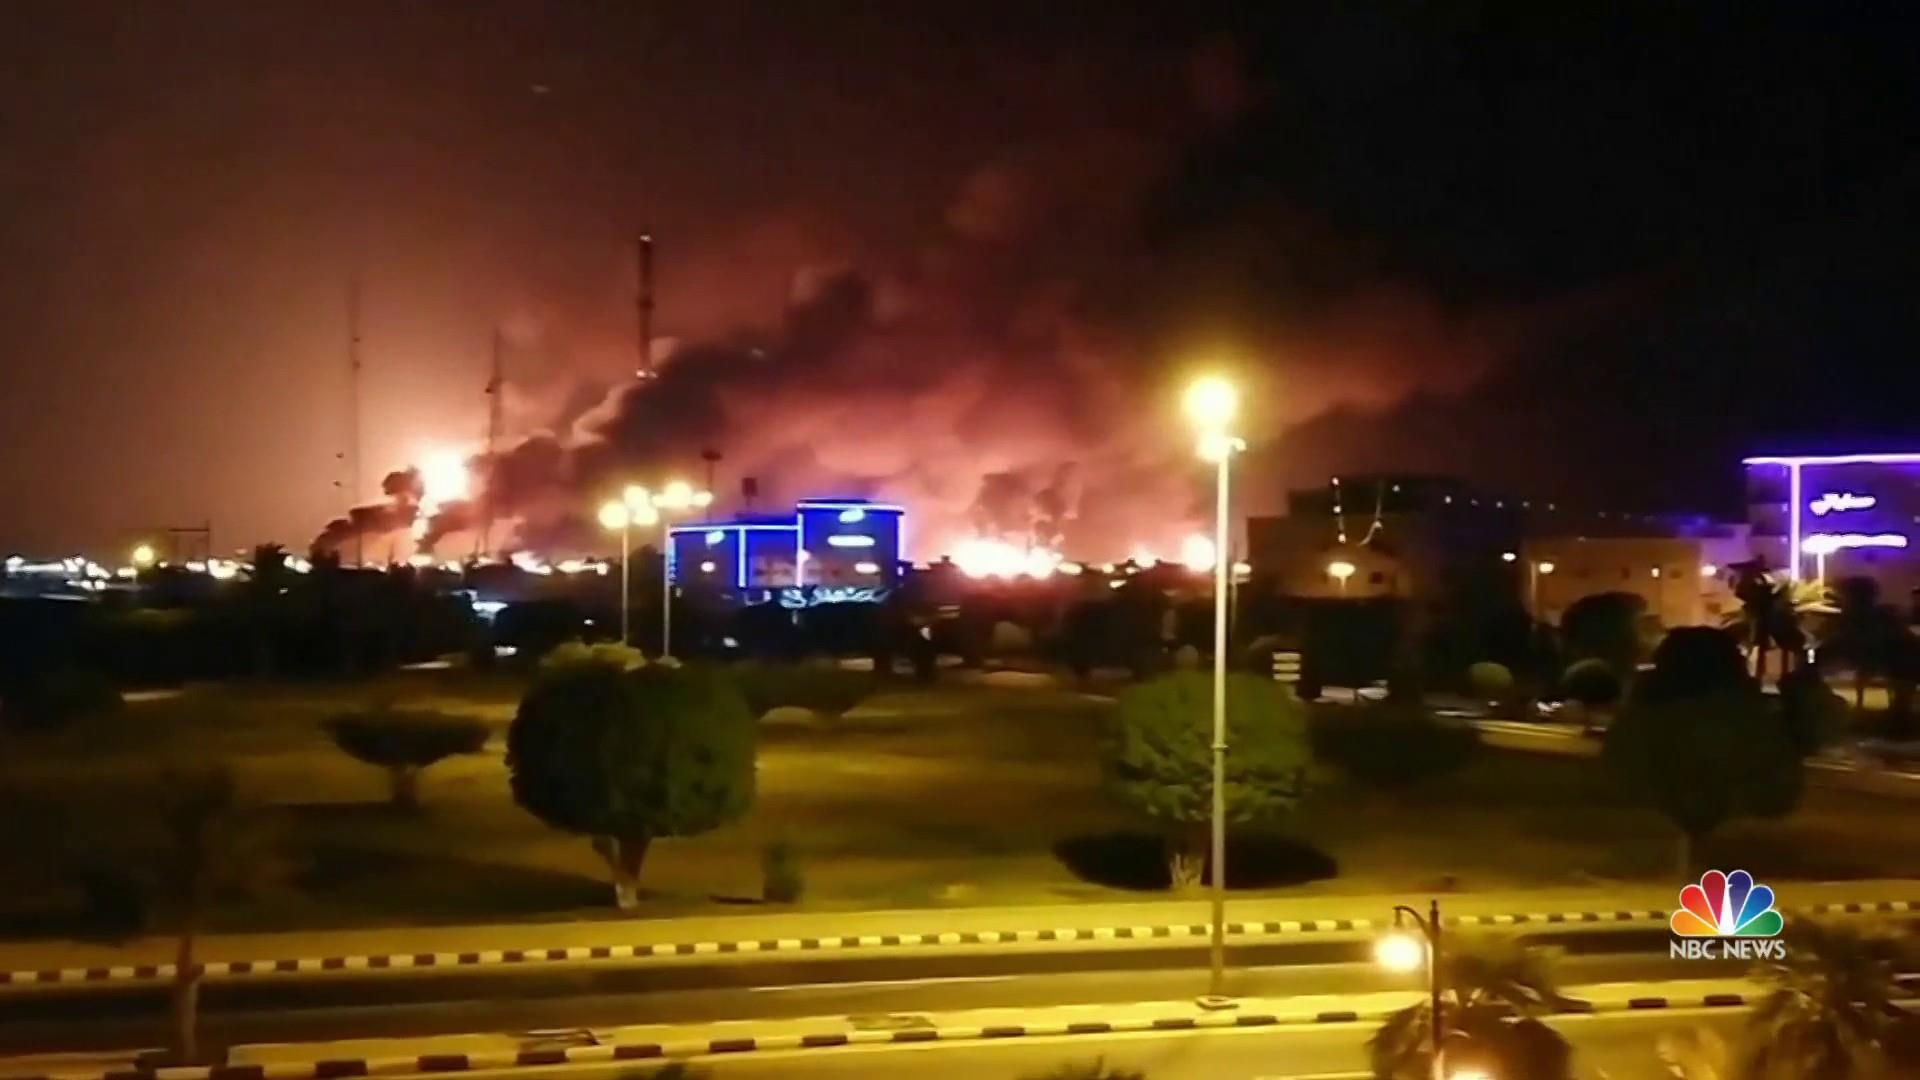 World's largest oil processing facility in Saudi Arabia in flames after drone attack